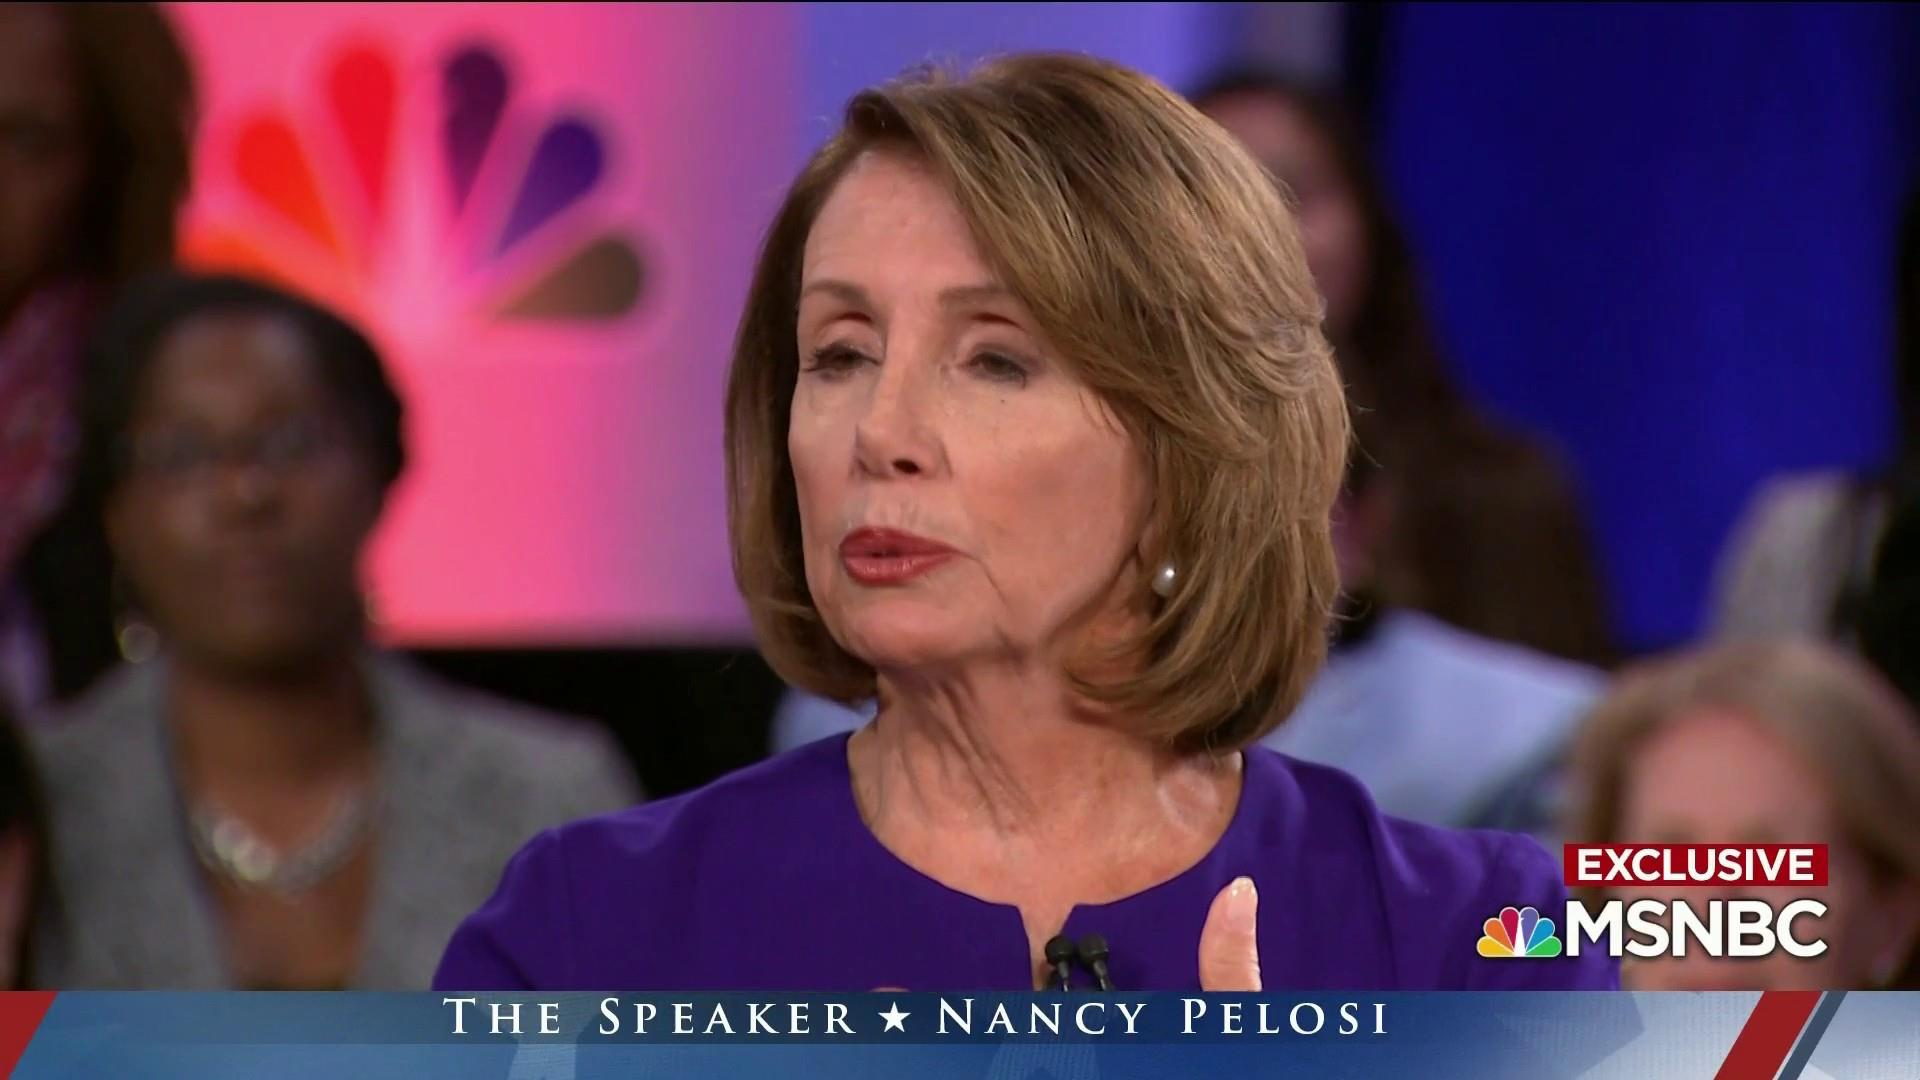 Speaker Pelosi on sexism: 'Know your power'